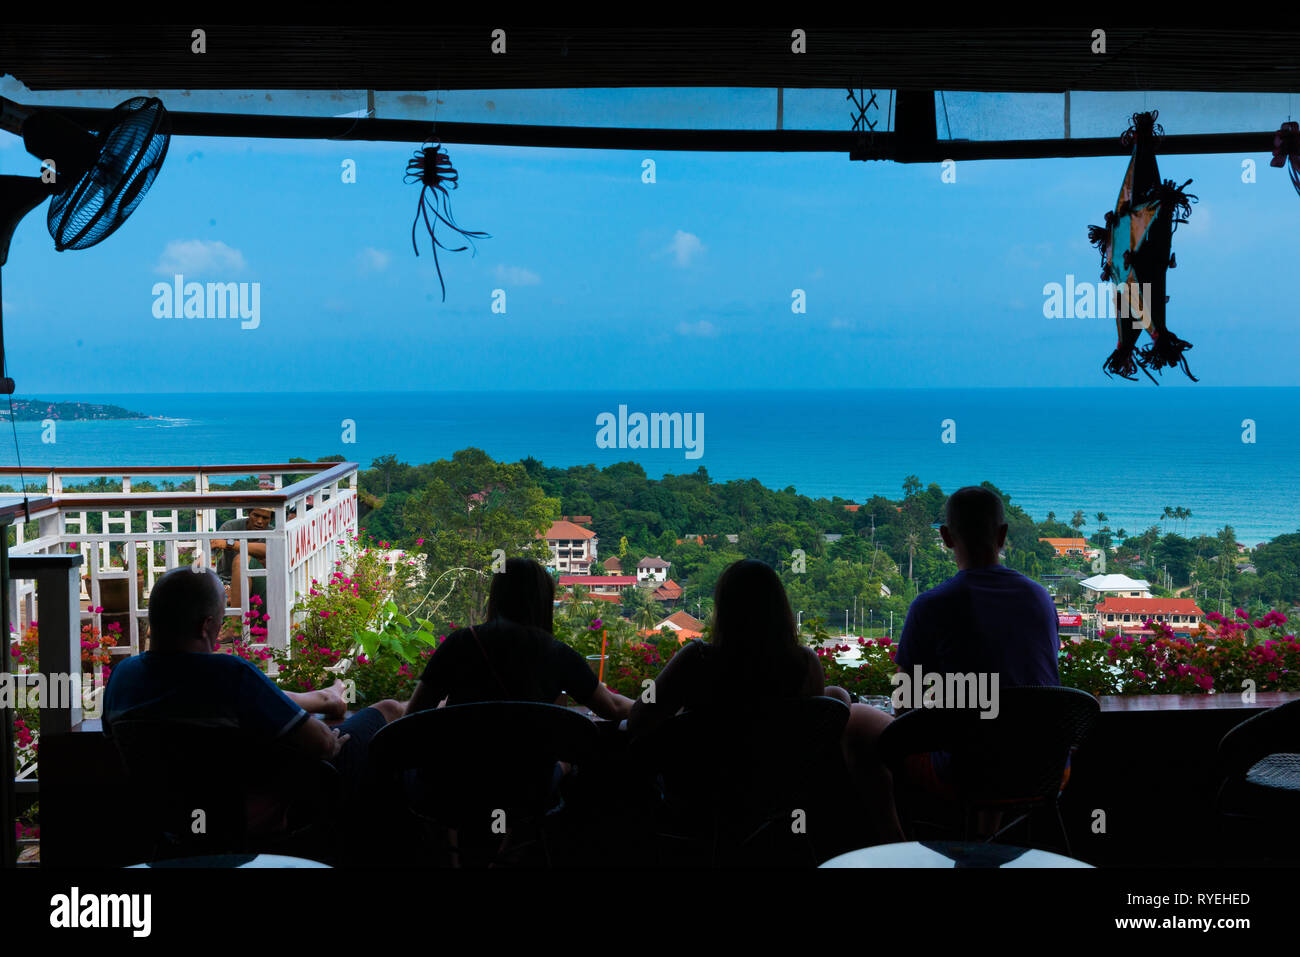 Silhouettes of people relaxing in bar on observation deck Lamai view point, Samui, Thailand Stock Photo